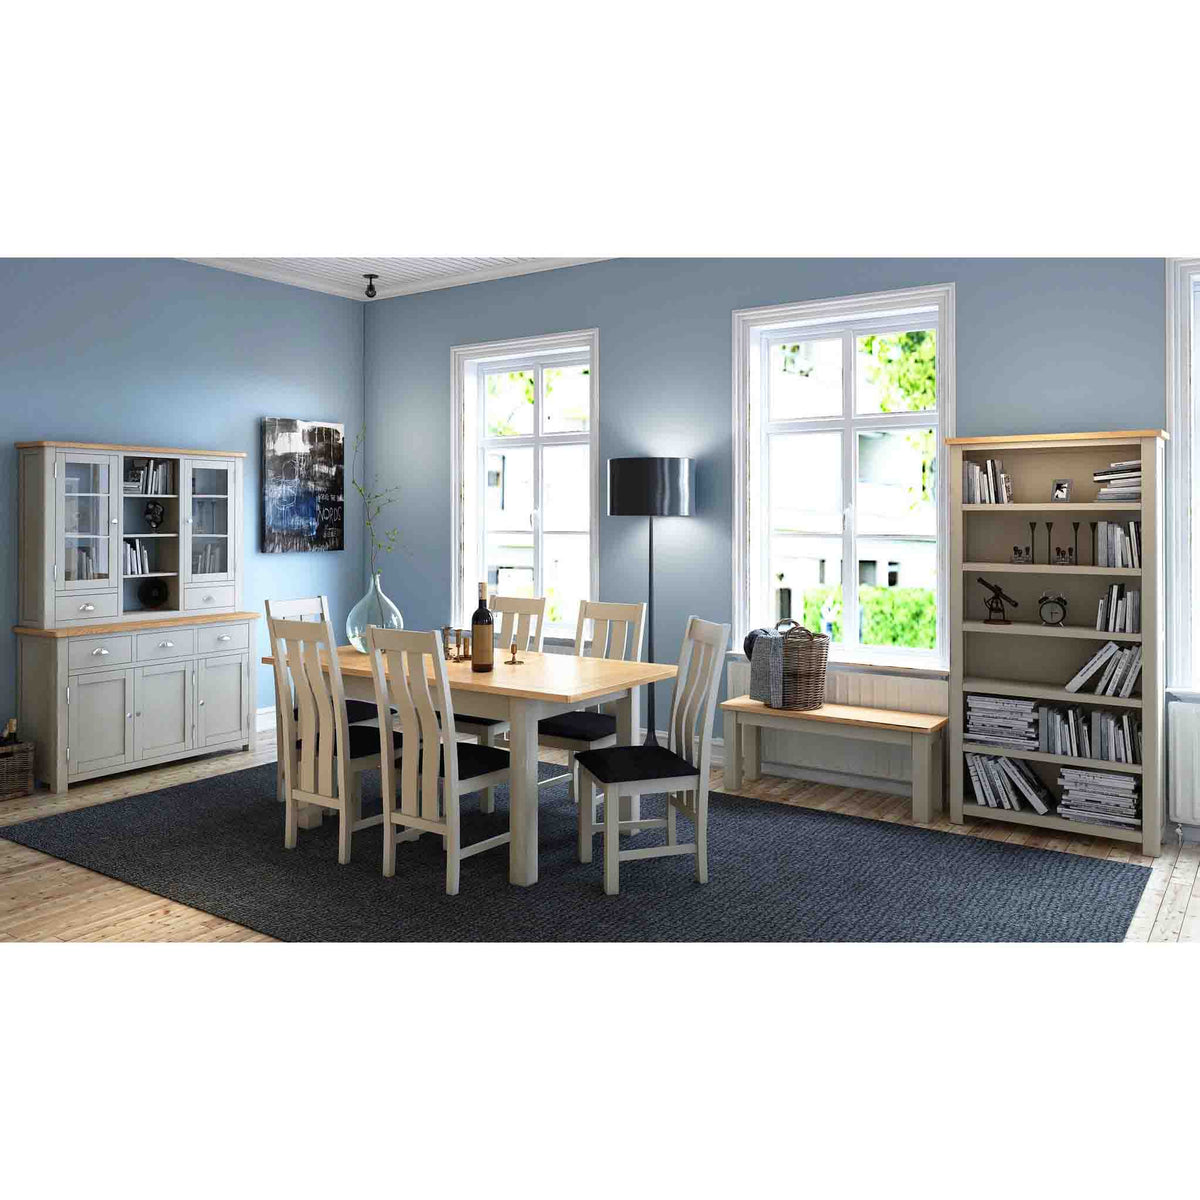 Decorative room image with the Padstow Grey Large Bookcase